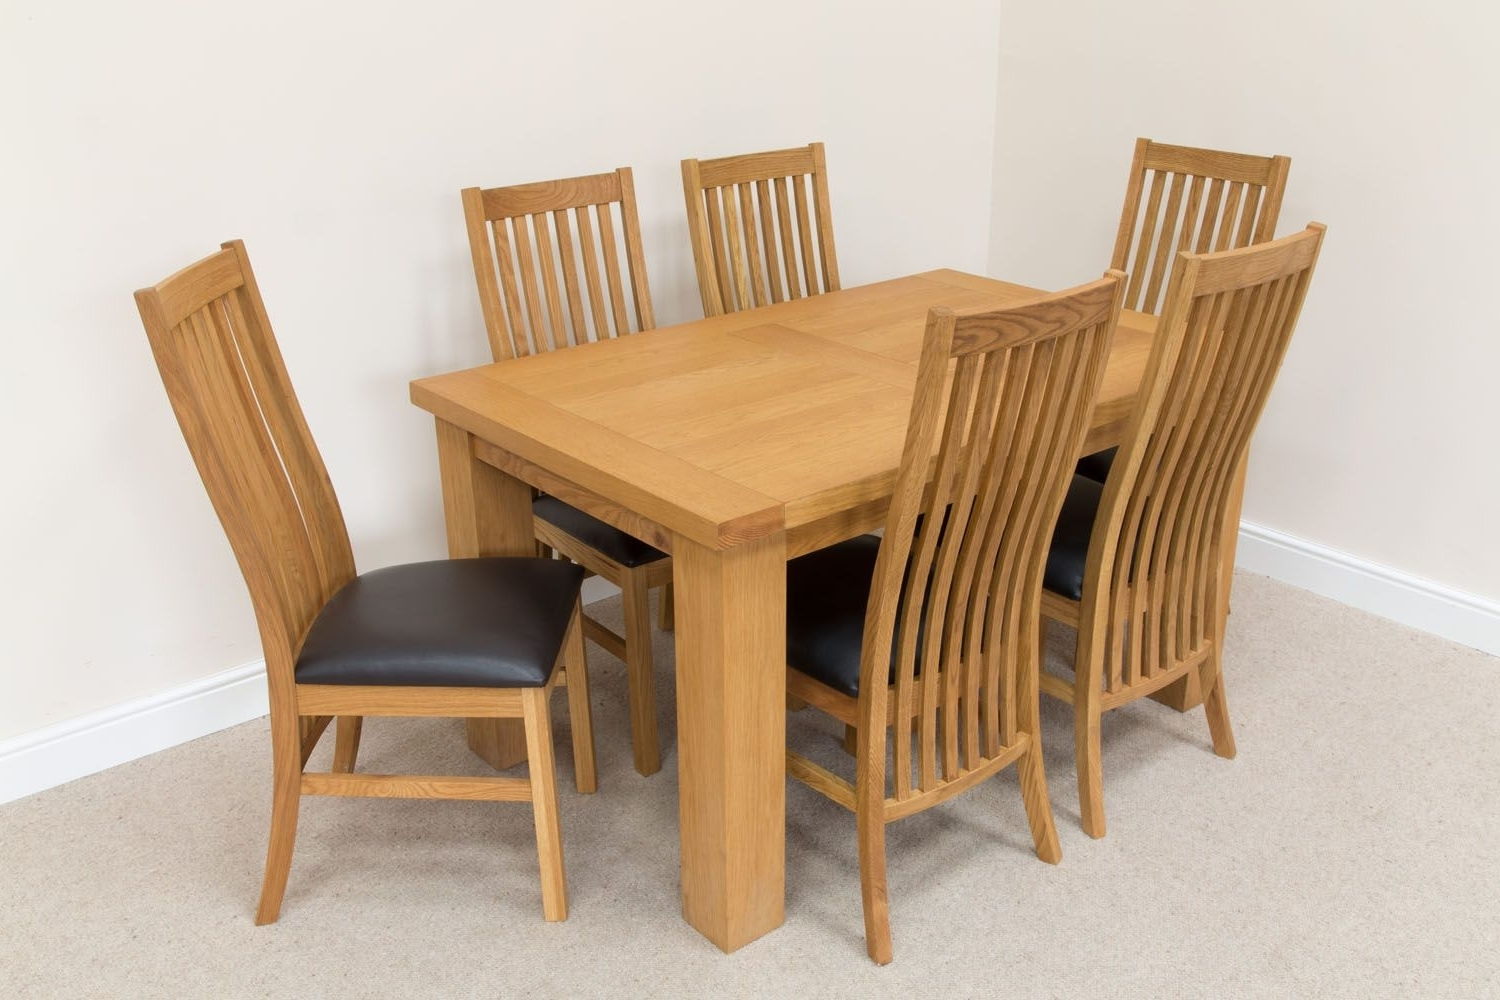 6 Seater Oak Dining Set throughout Oak Dining Tables With 6 Chairs